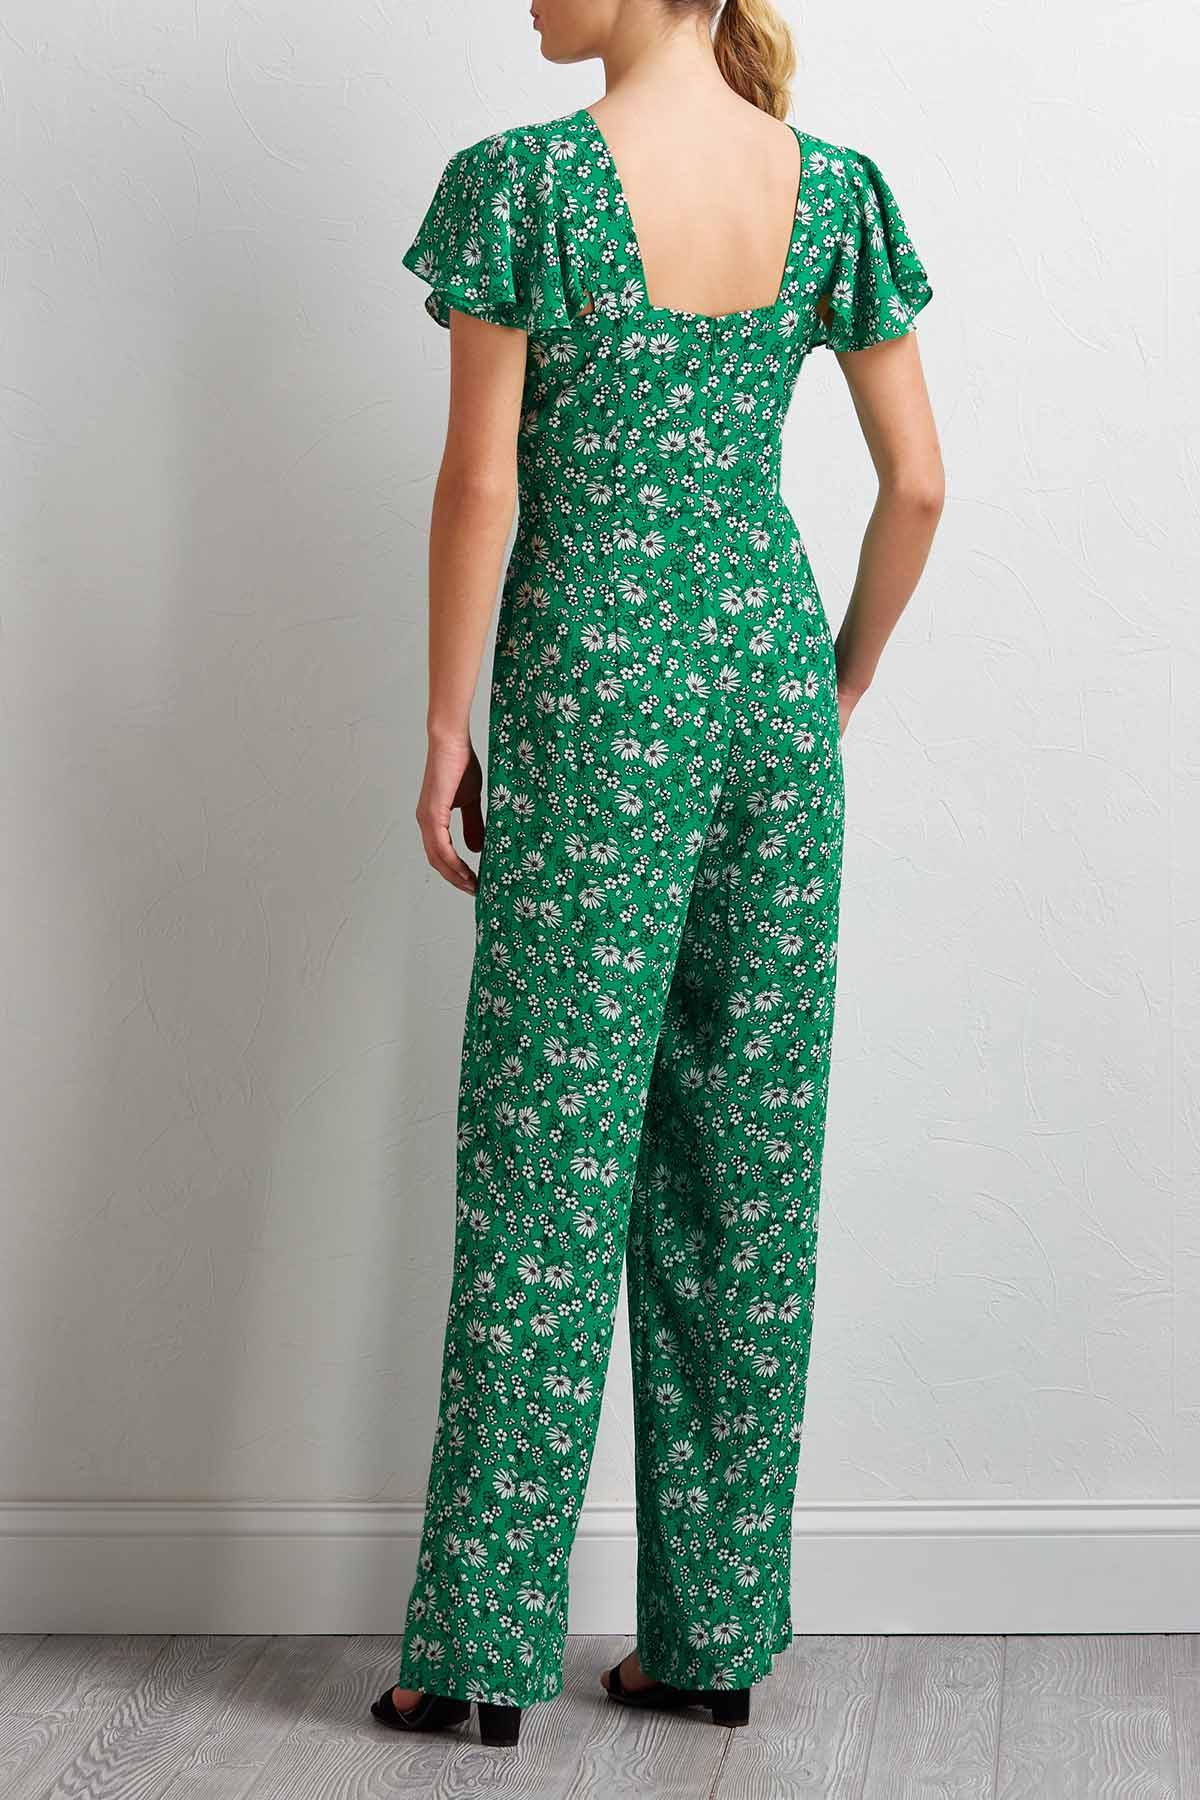 Green Floral Jumpsuit